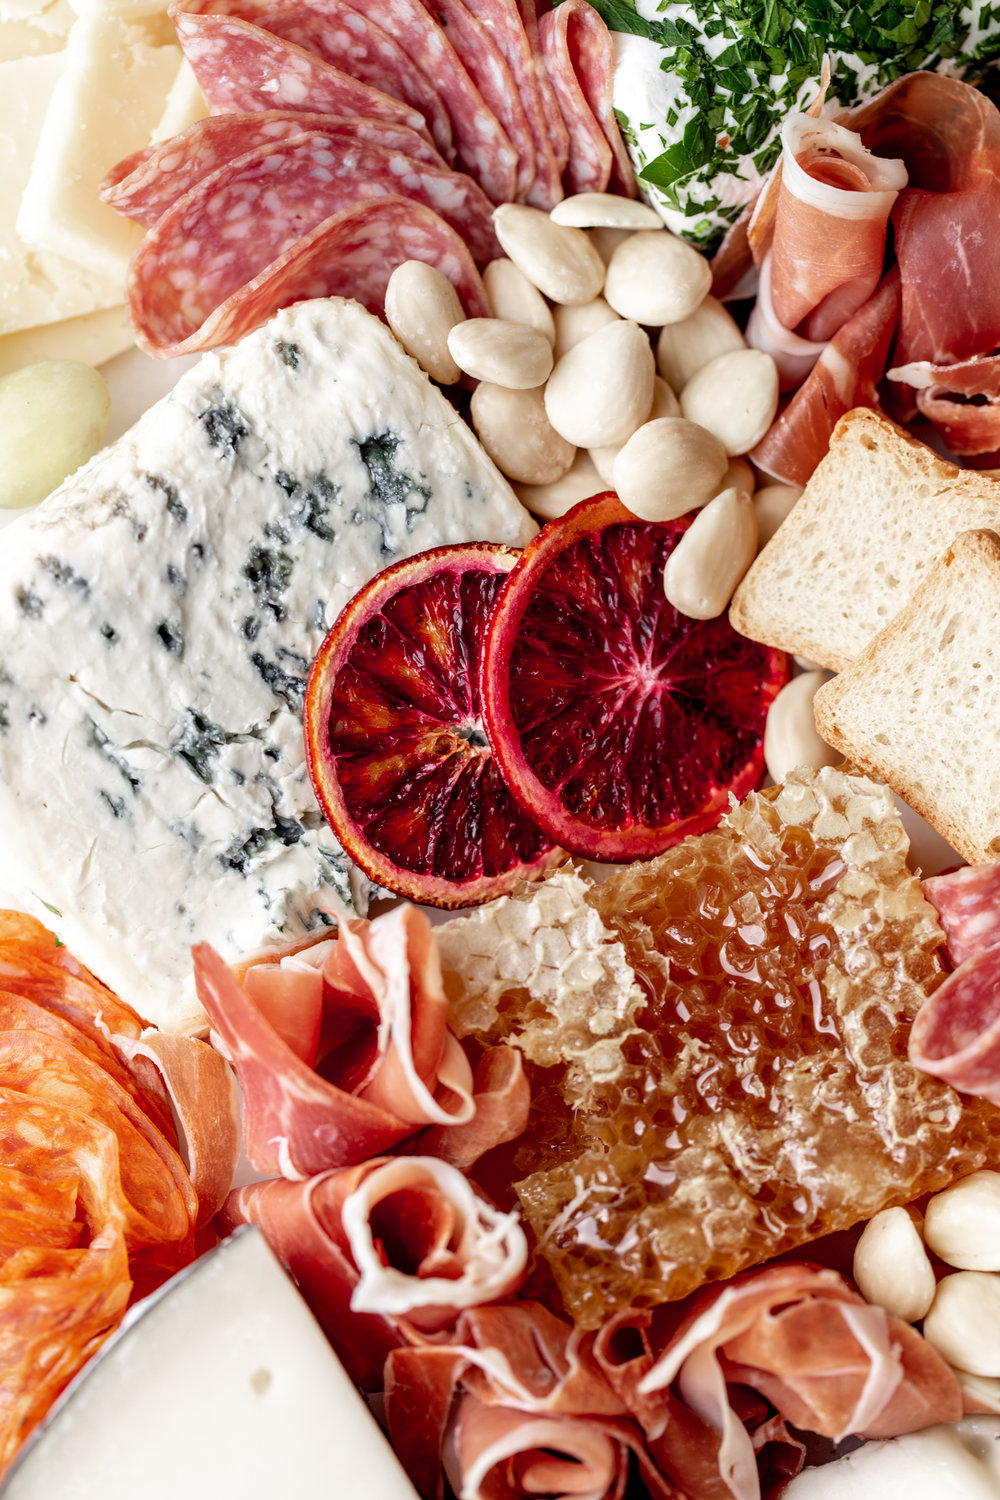 How to put together a cheese and charcuterie board saint agur blue cheese